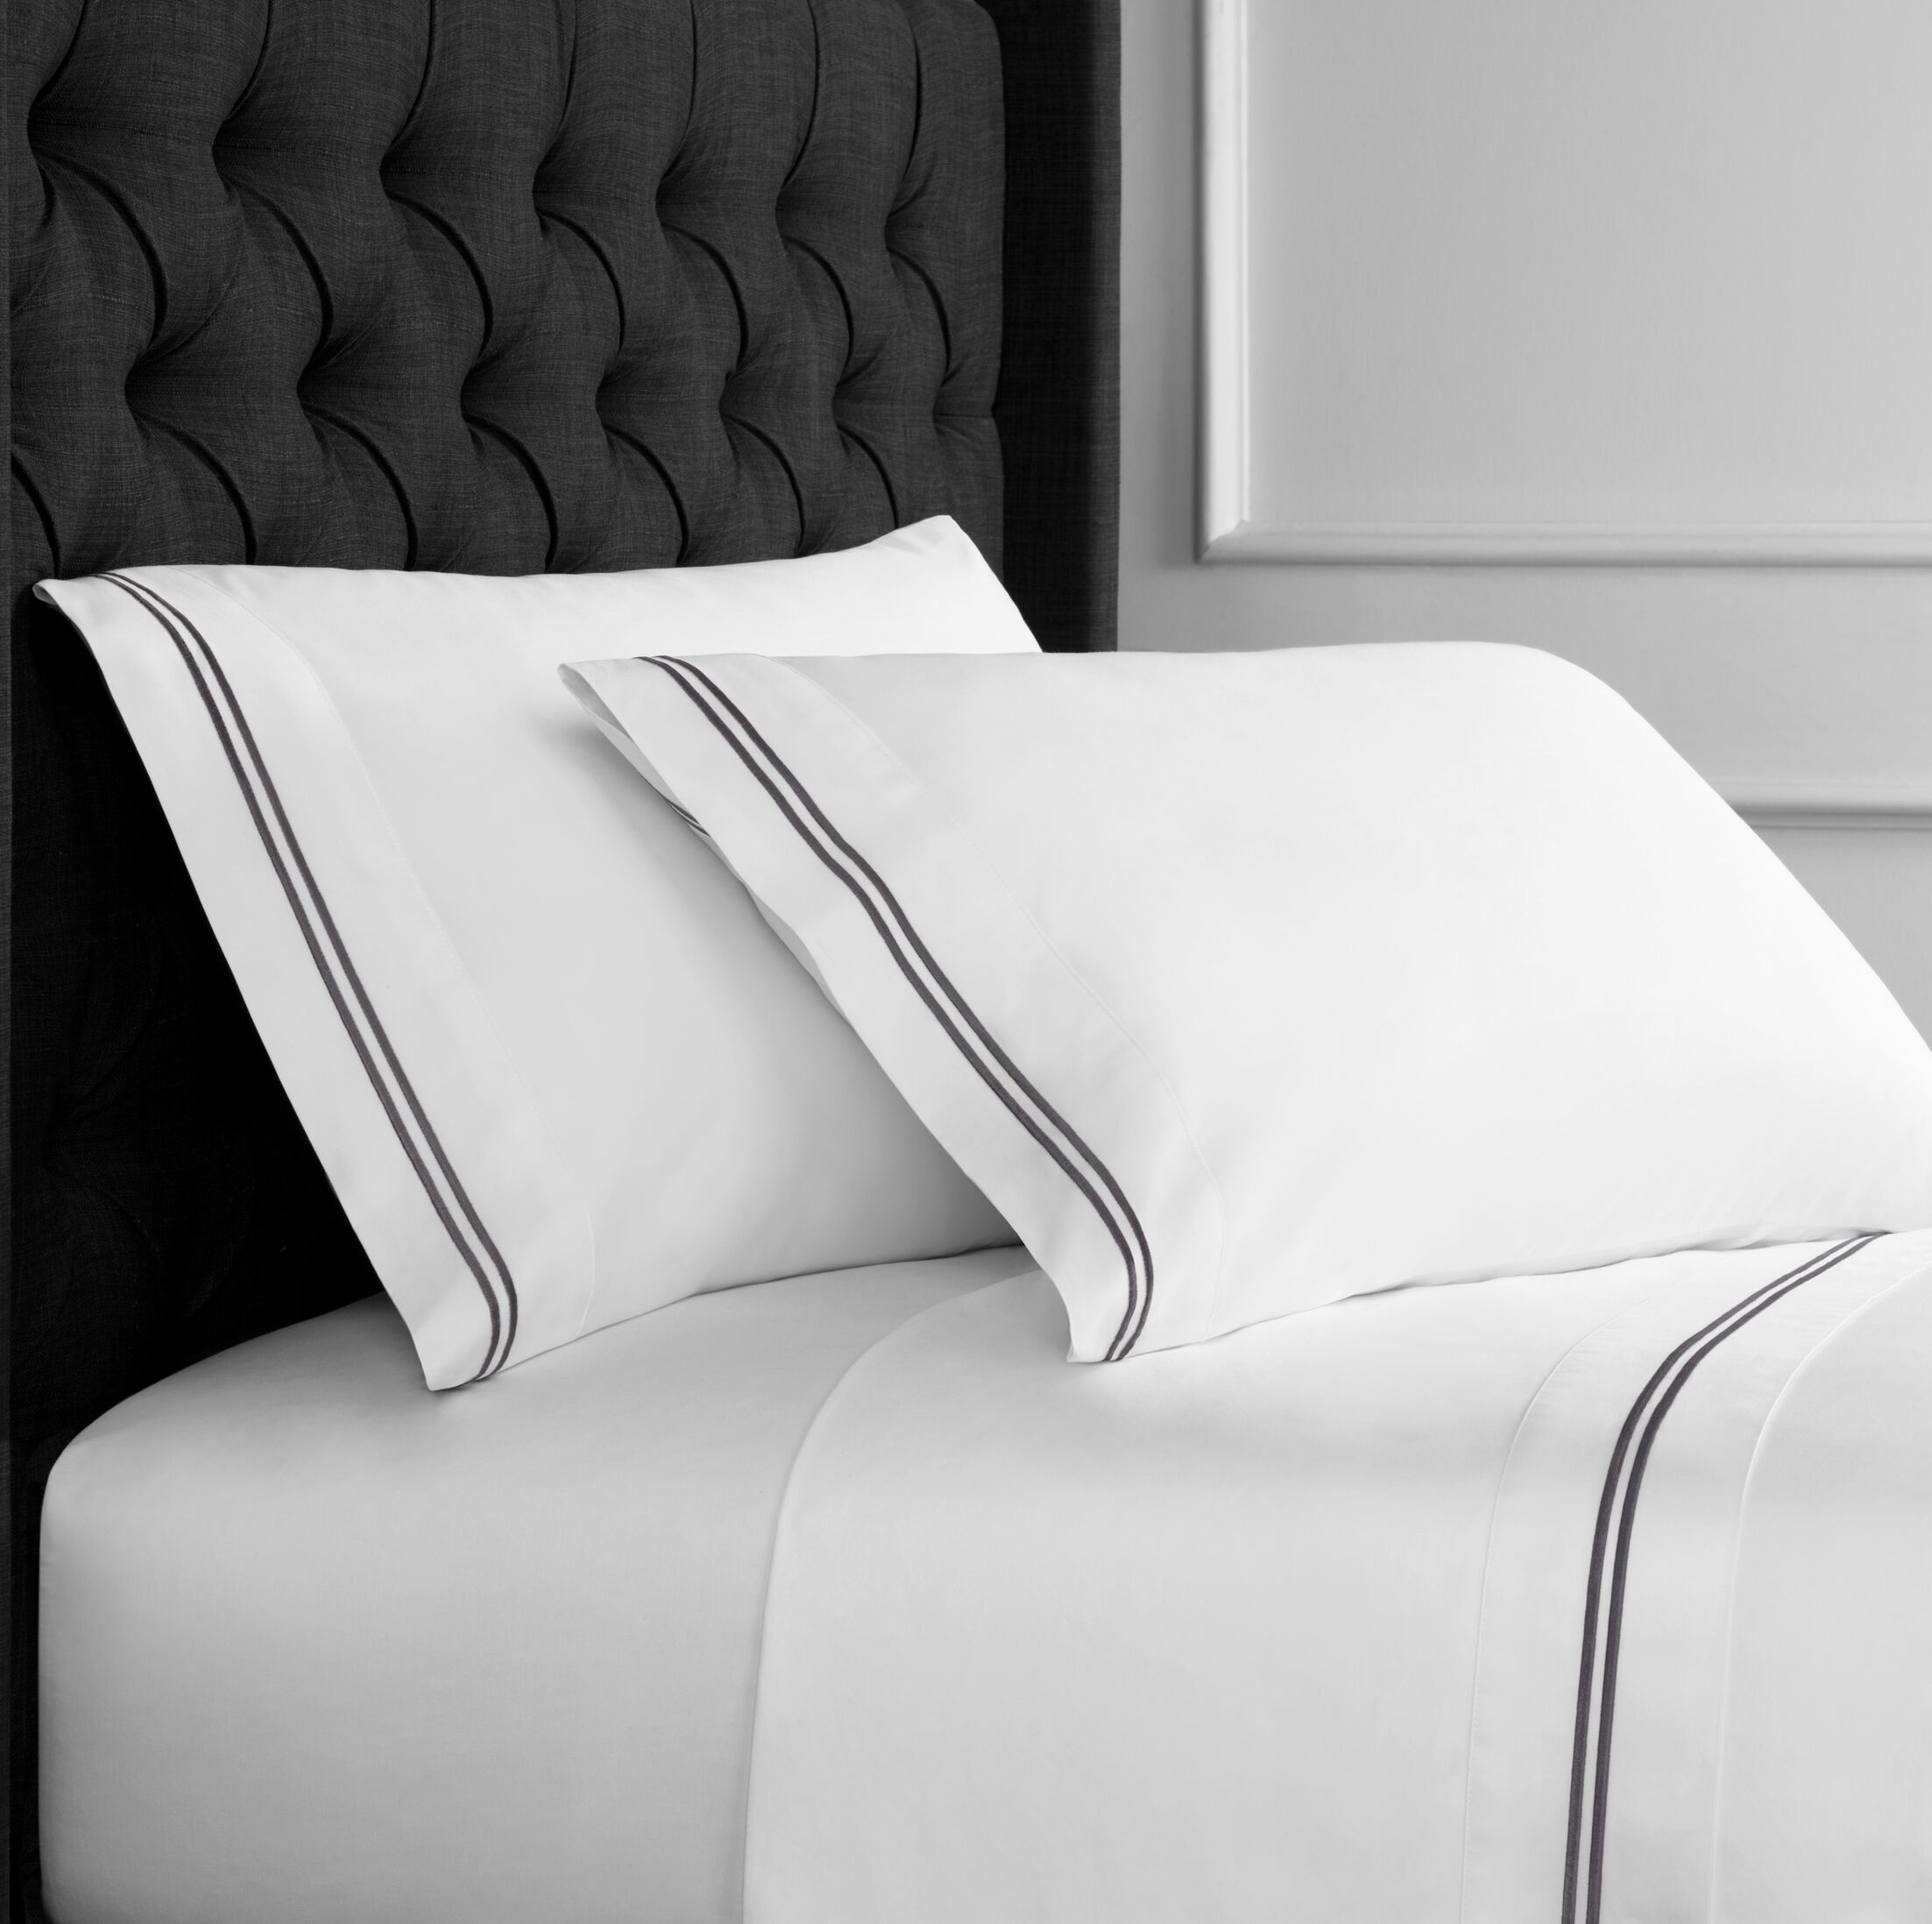 Drakeford Embroidered 600 Thread Count Sheet Set Size: King, Color: Charcoal Gray